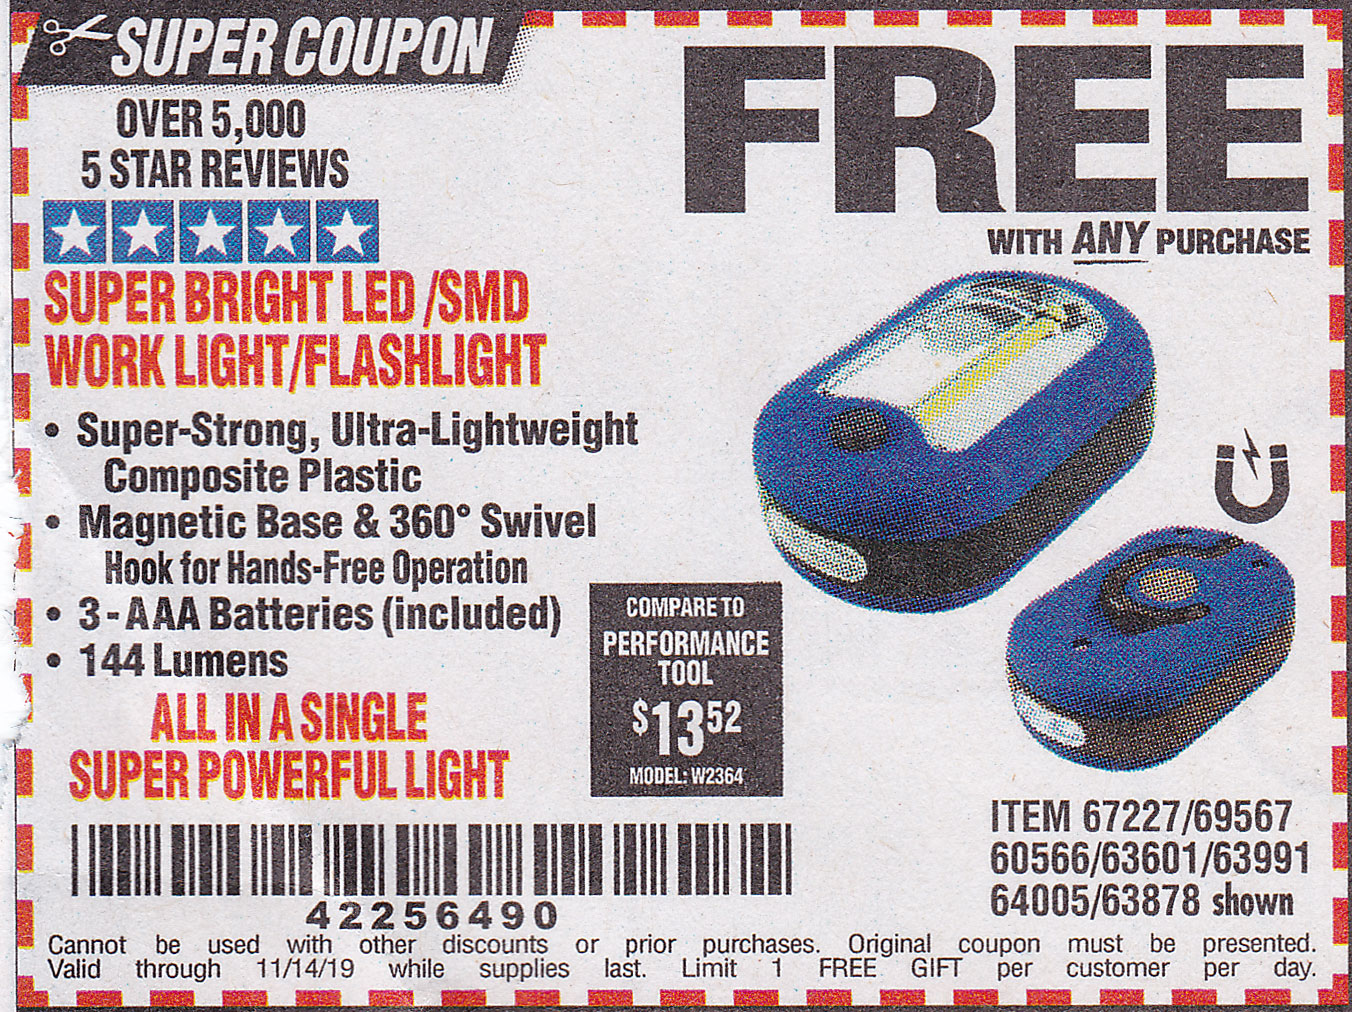 www.hfqpdb.com - LED PORTABLE WORKLIGHT/FLASHLIGHT Lot No. 63878/63991/64005/69567/60566/63601/67227